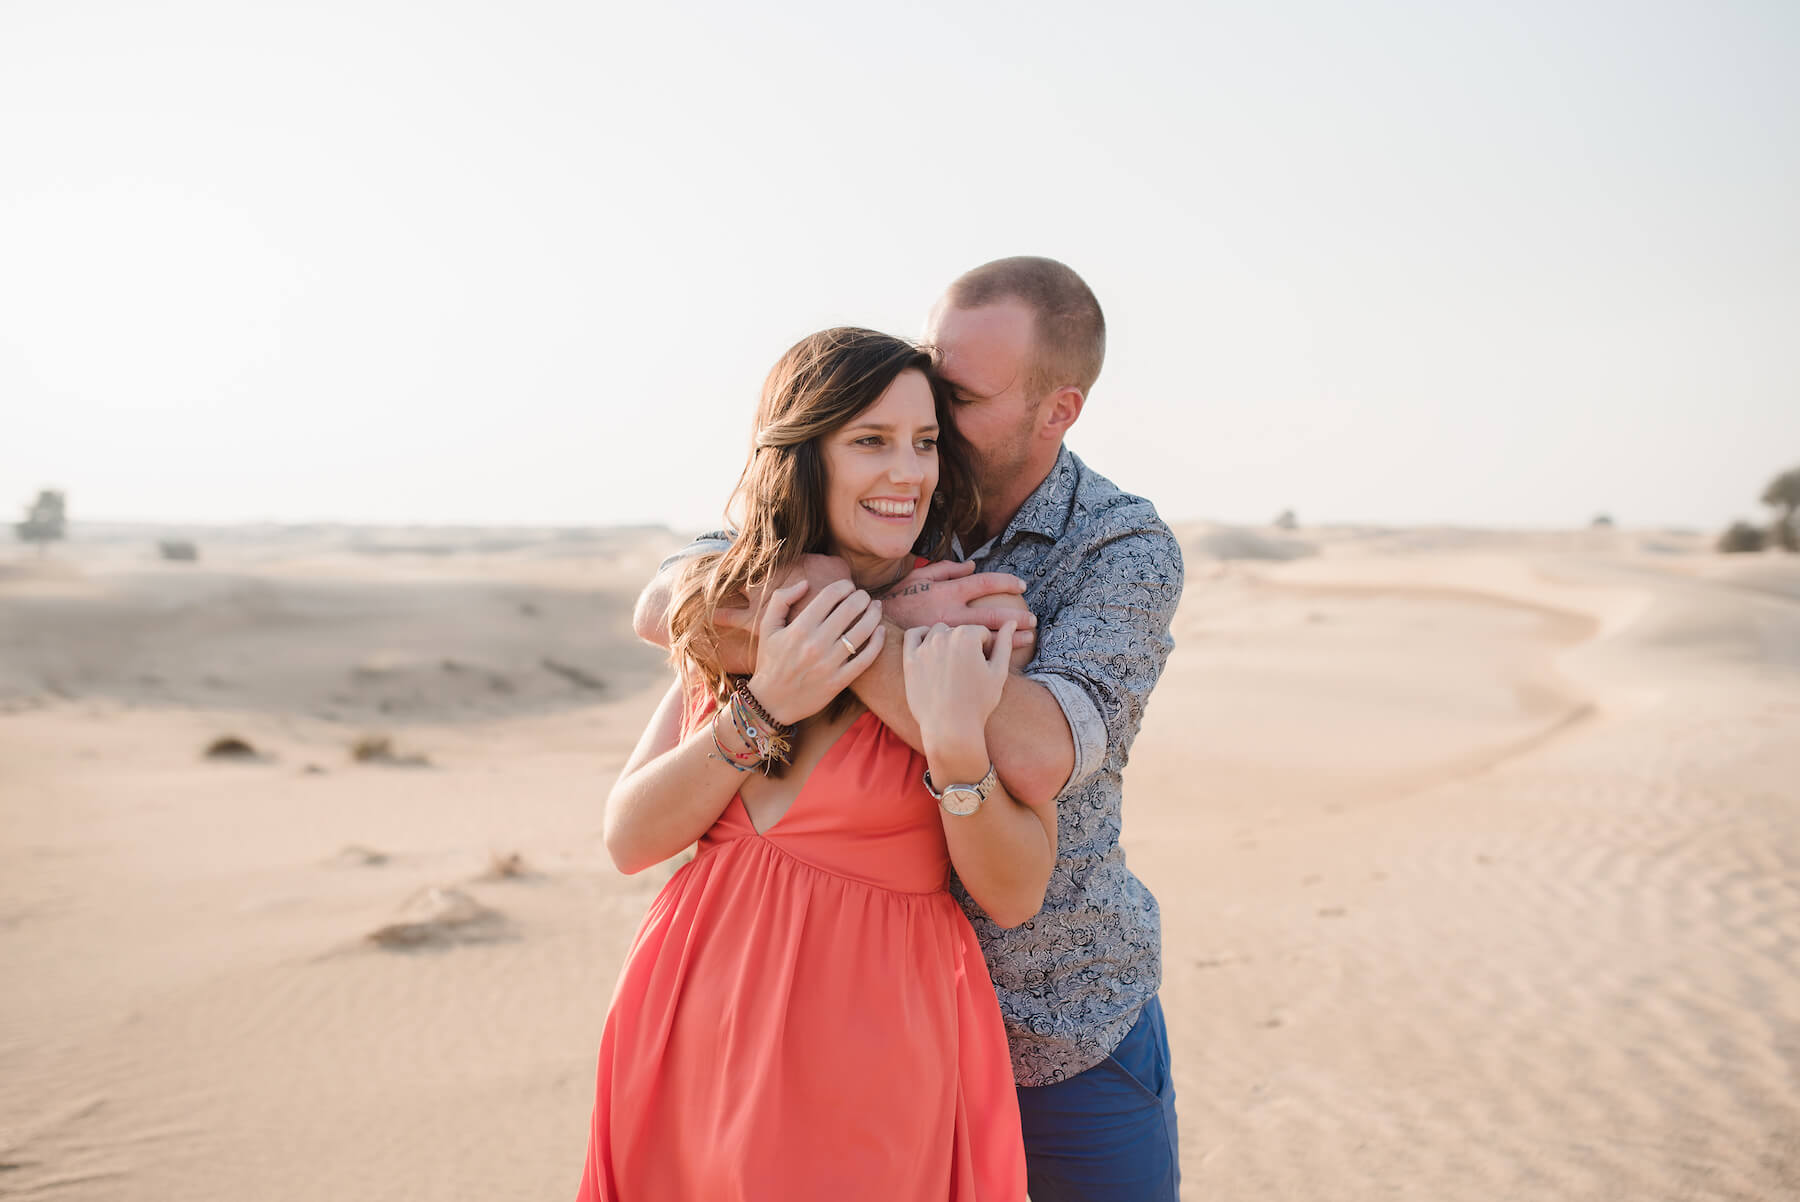 Couple hugging each other in the desert sands of Al Qudra Lake on a couples trip to Dubai